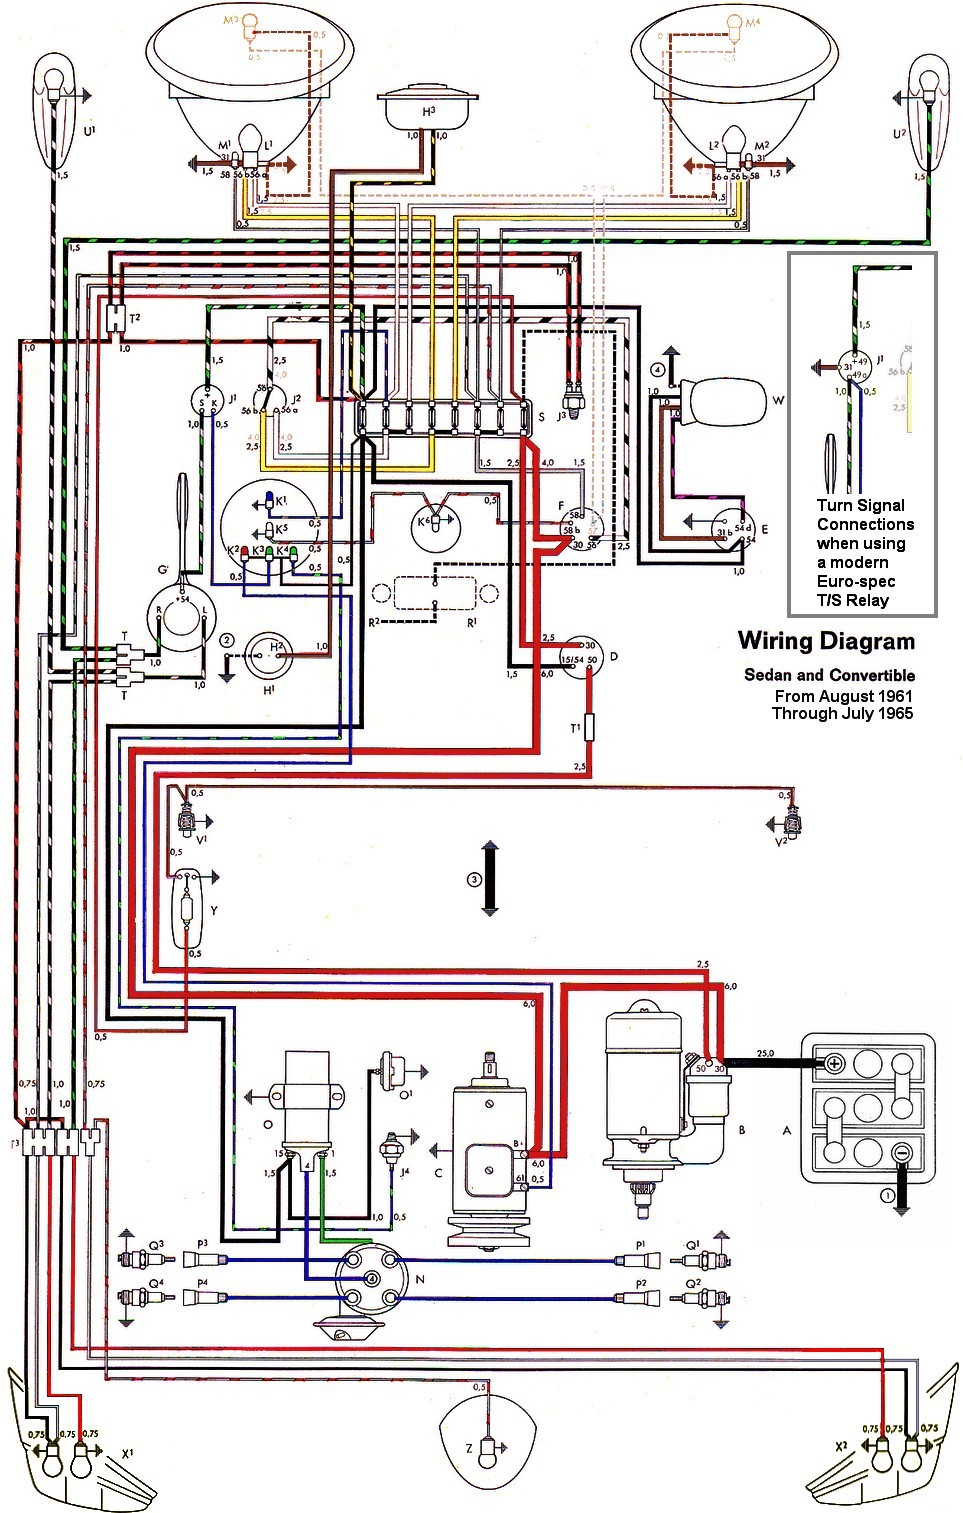 1969 vw bug dashboard wiring wiring diagram Volkswagen 1969 Wiring 1969 vw bug dashboard wiring wiring diagram1968 vw wiring schematic summis co \\\\u2022 1969